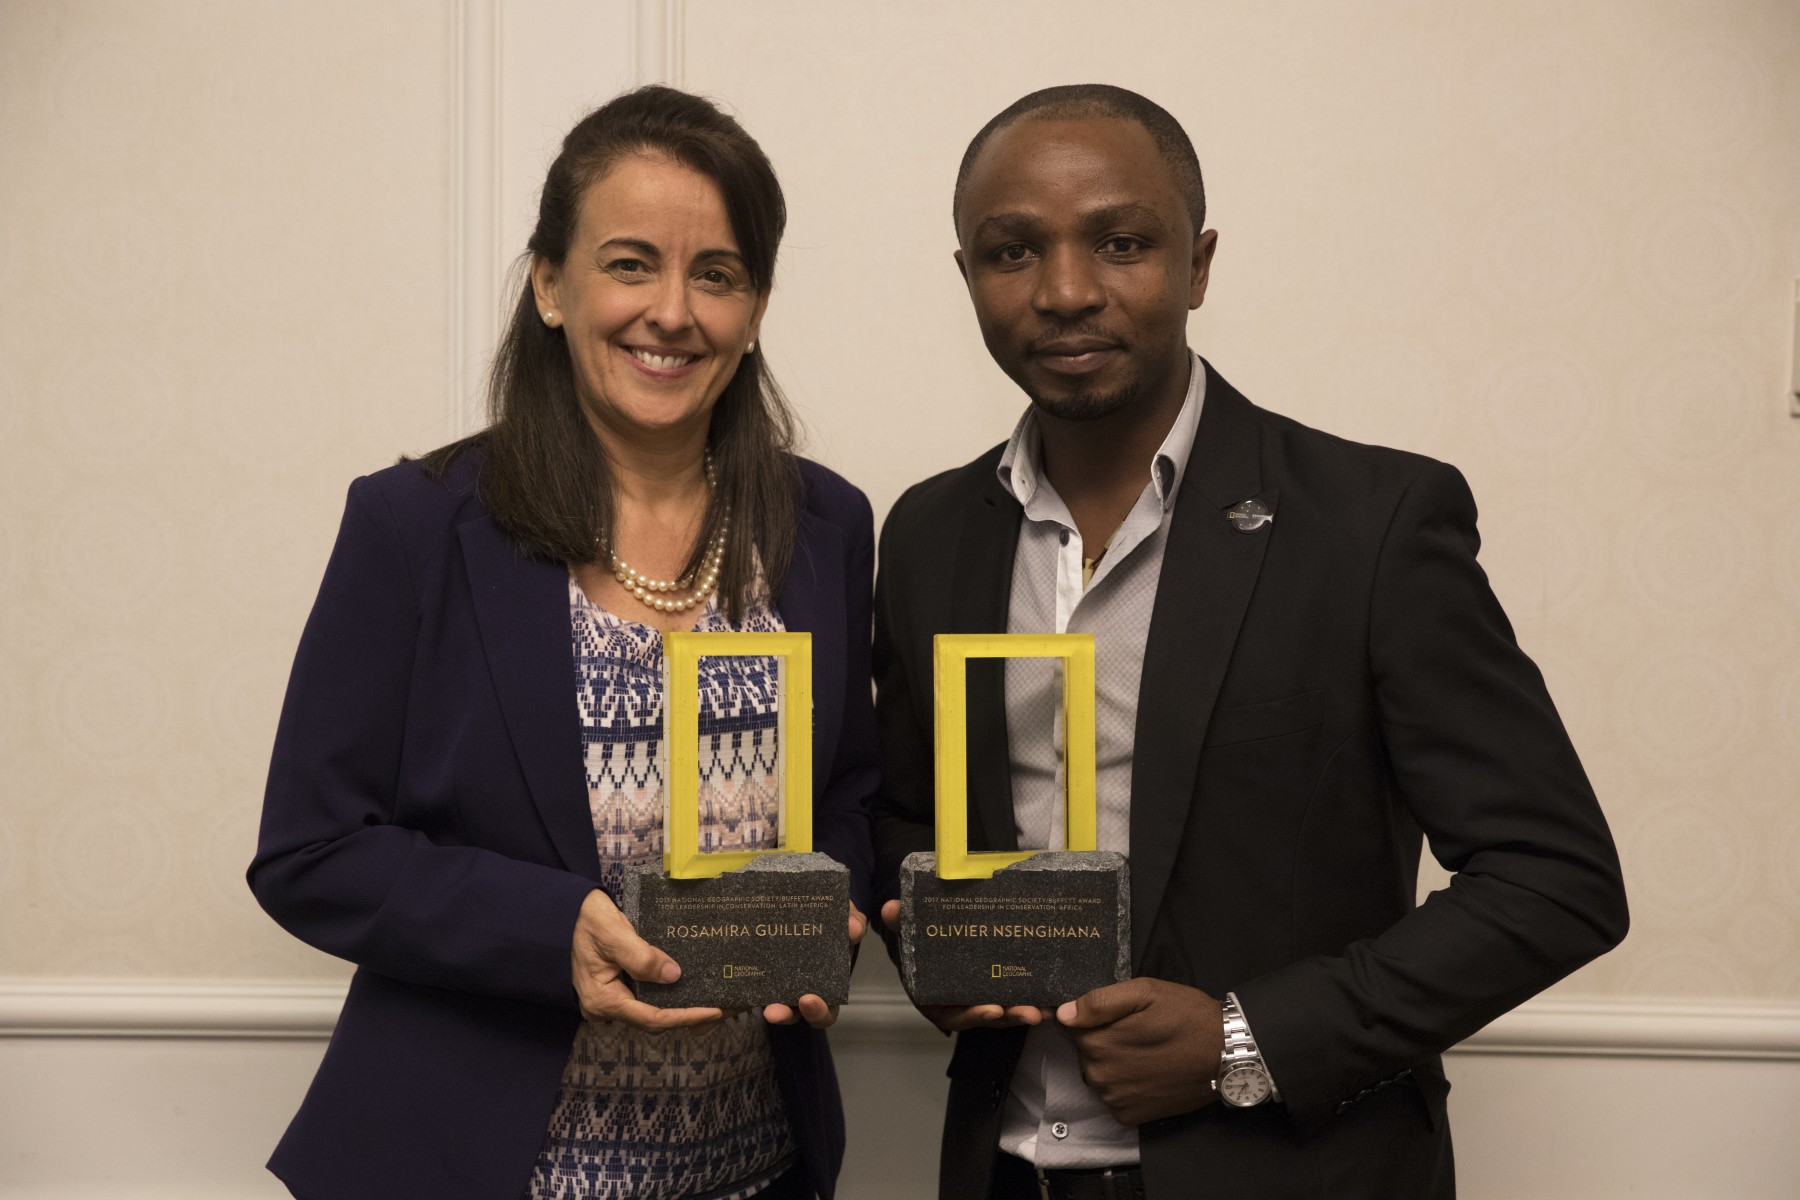 2017 National Geographic/Buffett Award for Leadership in Conservation Award Honors Conservationists Rosamira Guillen (left) and Dr. Olivier Nsengimana (right)